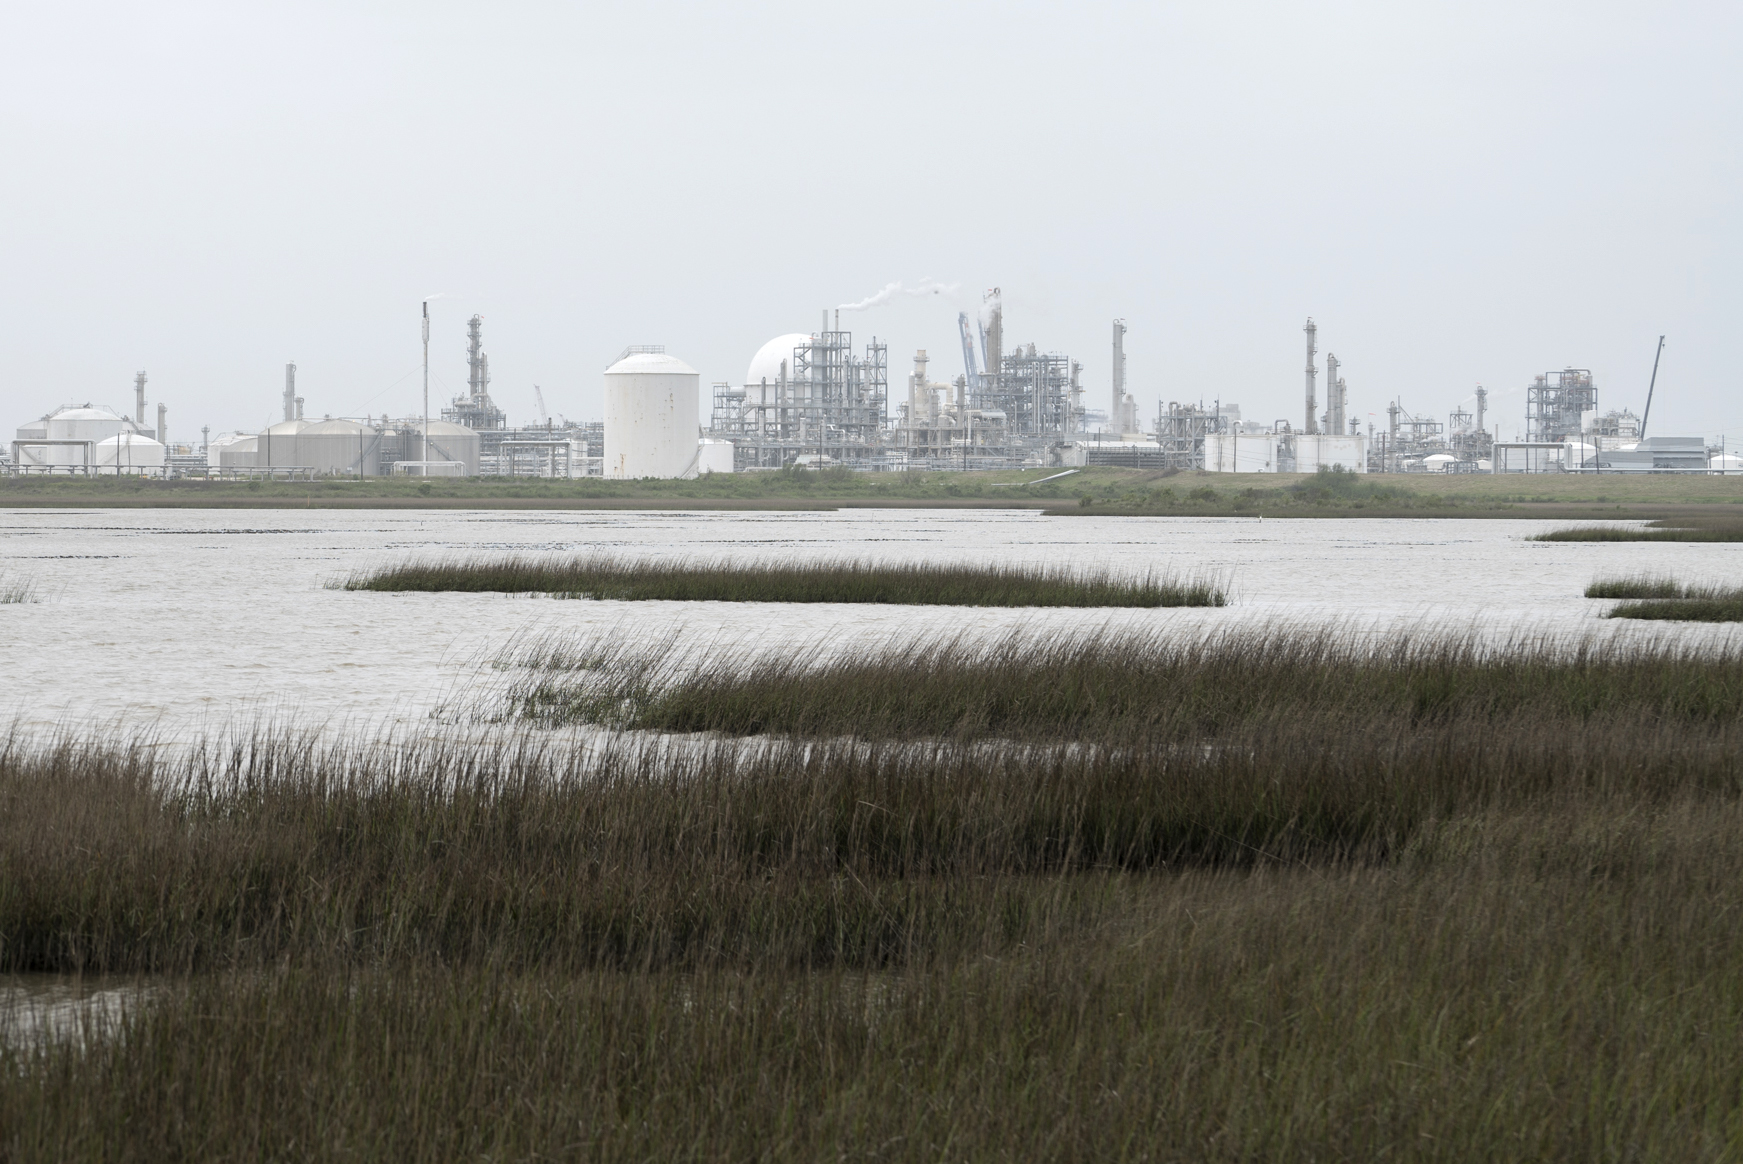 Dow Chemical plant and salt water marshes, Freeport, Texas.